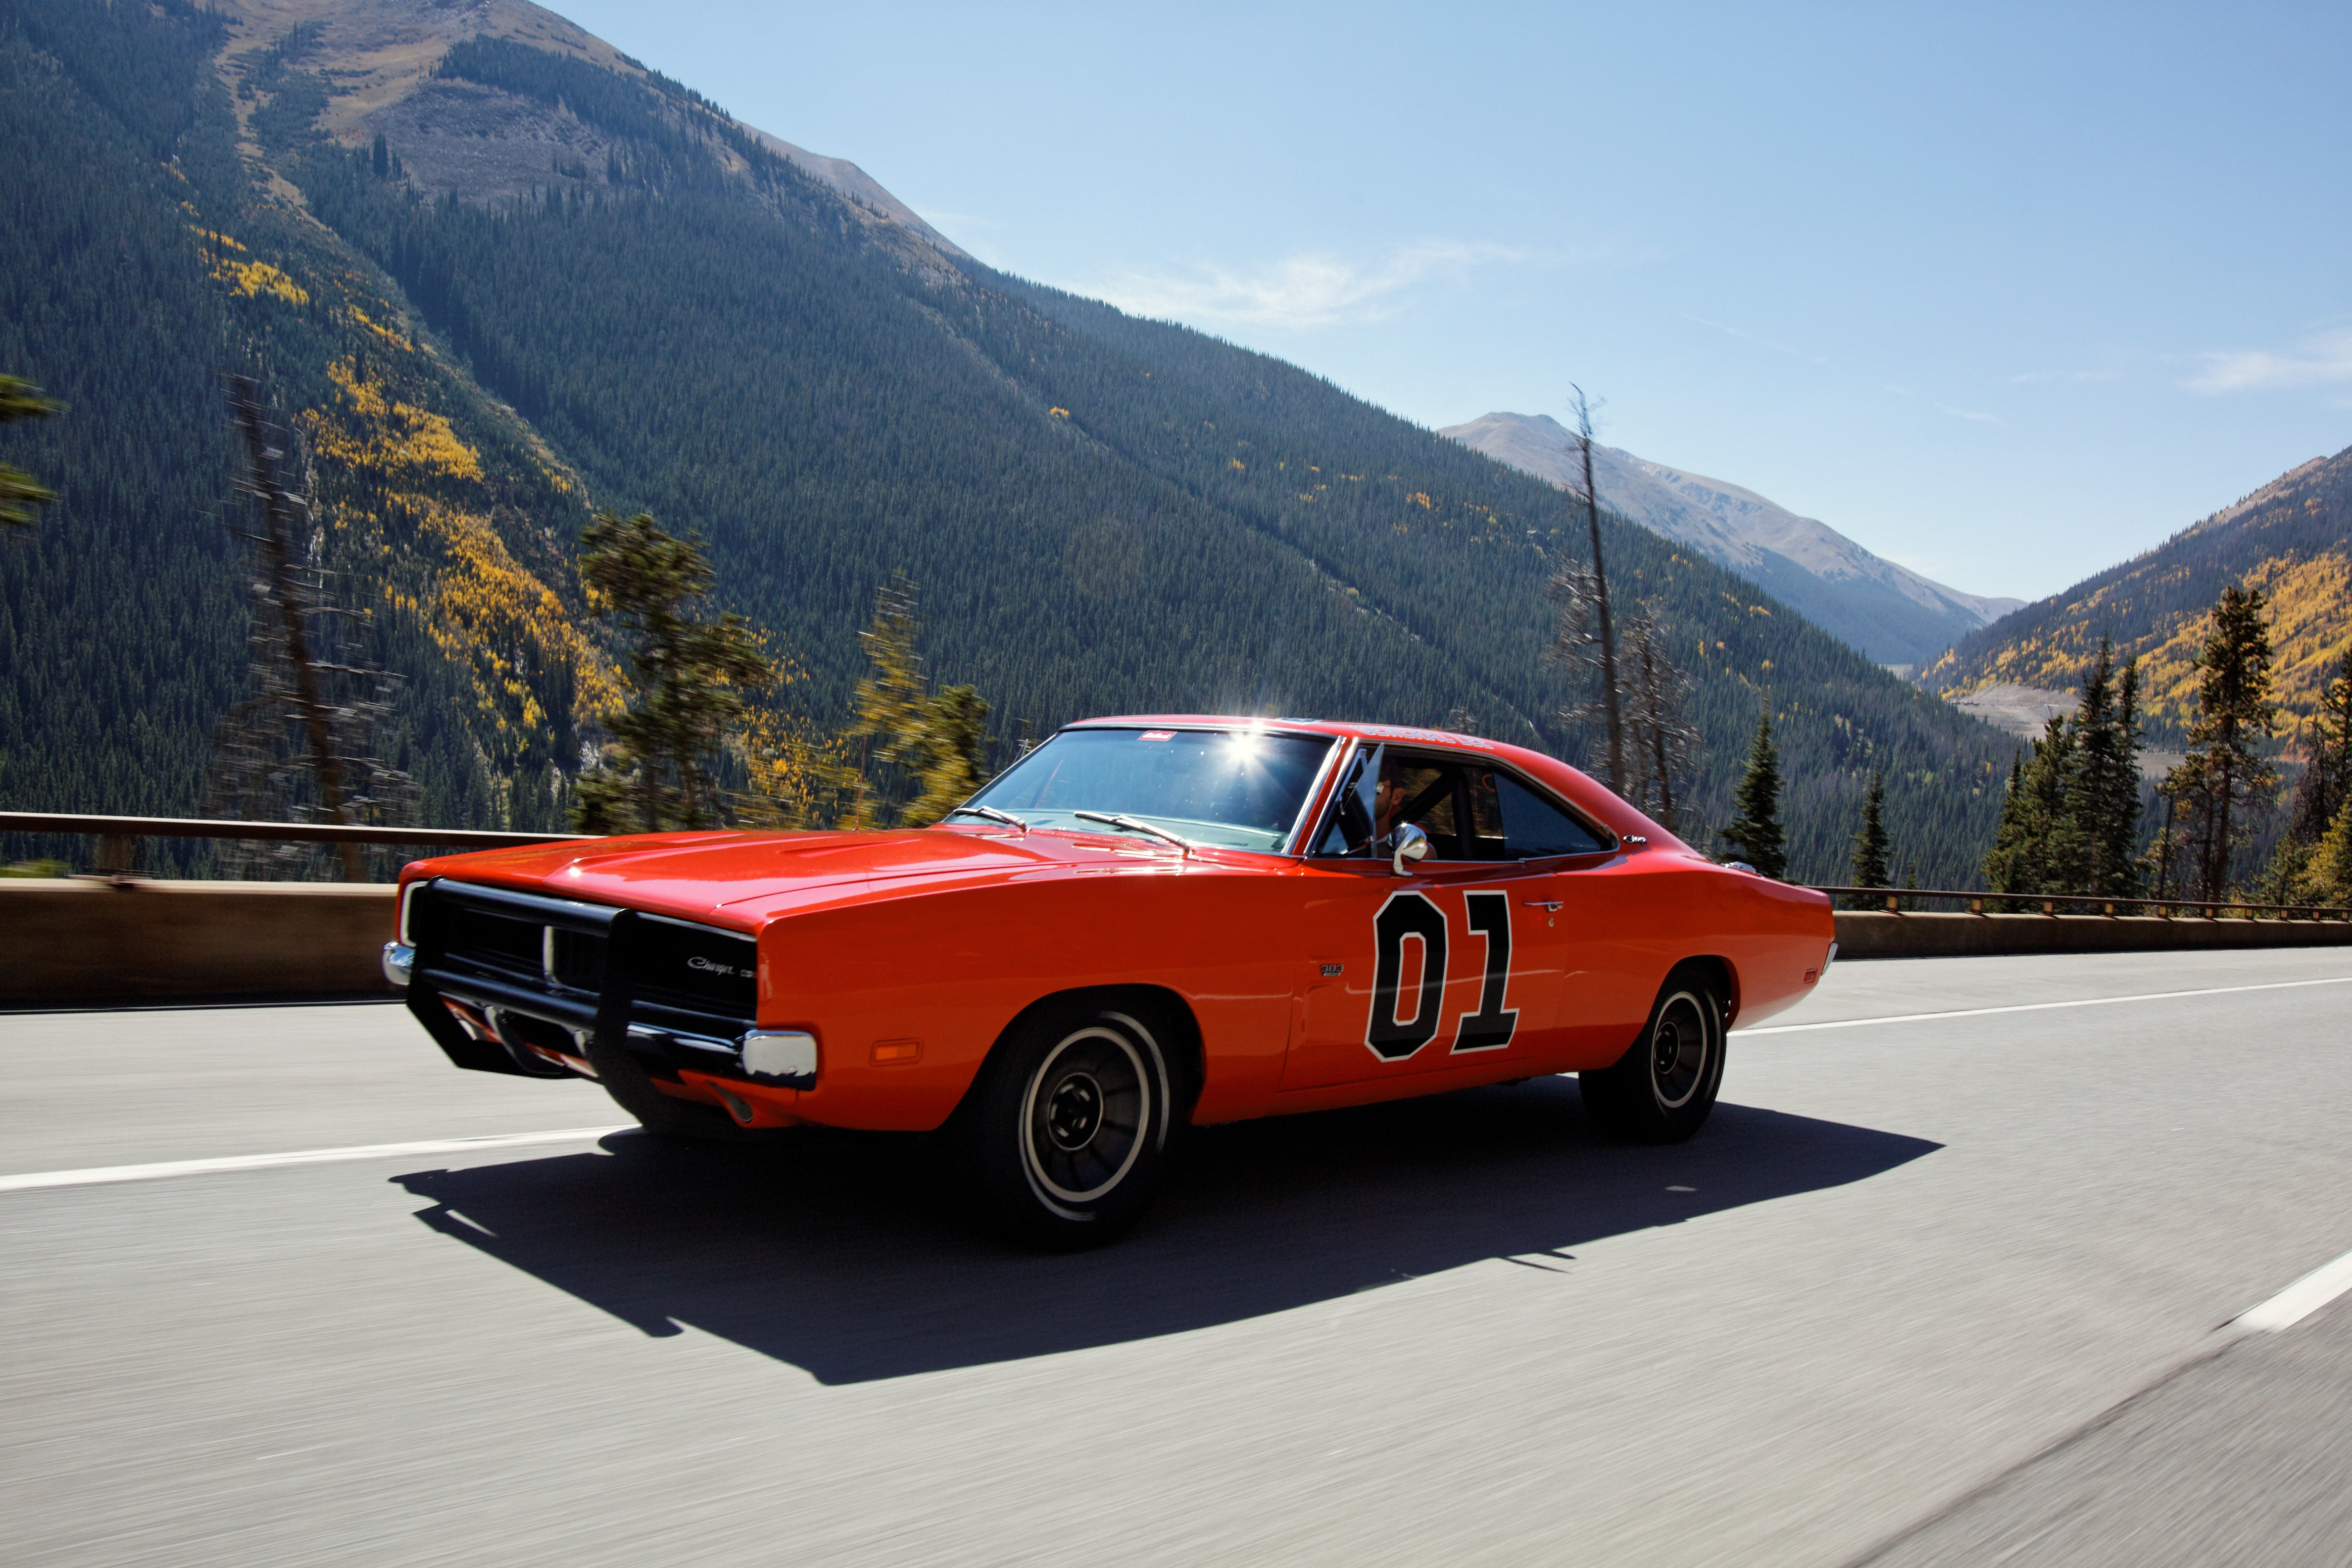 general lee from colorado movie cars wallpaper 4752x3168